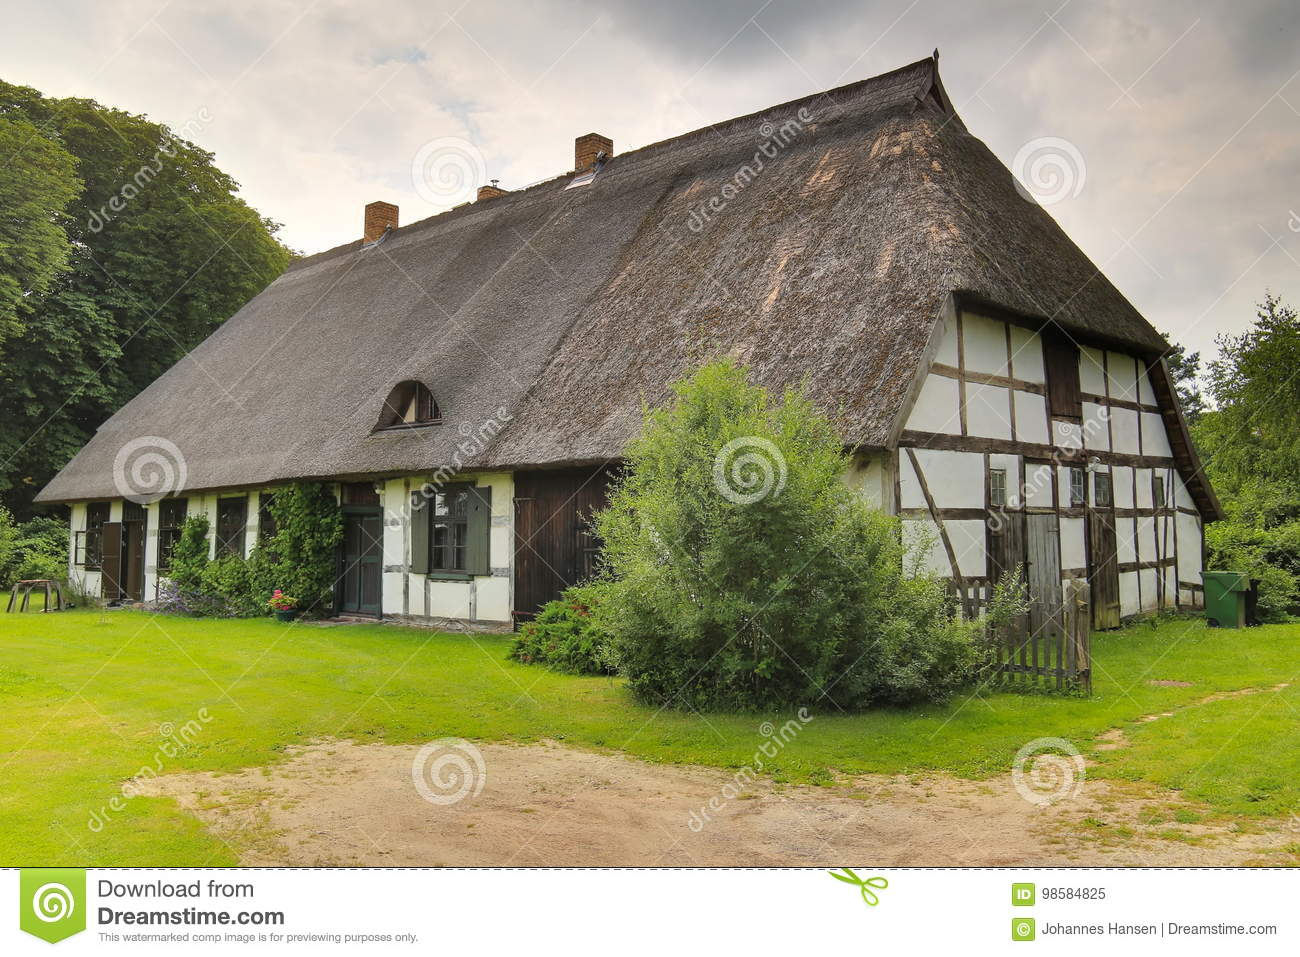 Download House Listed As Monument In Dersekow, Mecklenburg-Vorpommern, Germany Stock Image - Image of brown, dersekow: 98584825